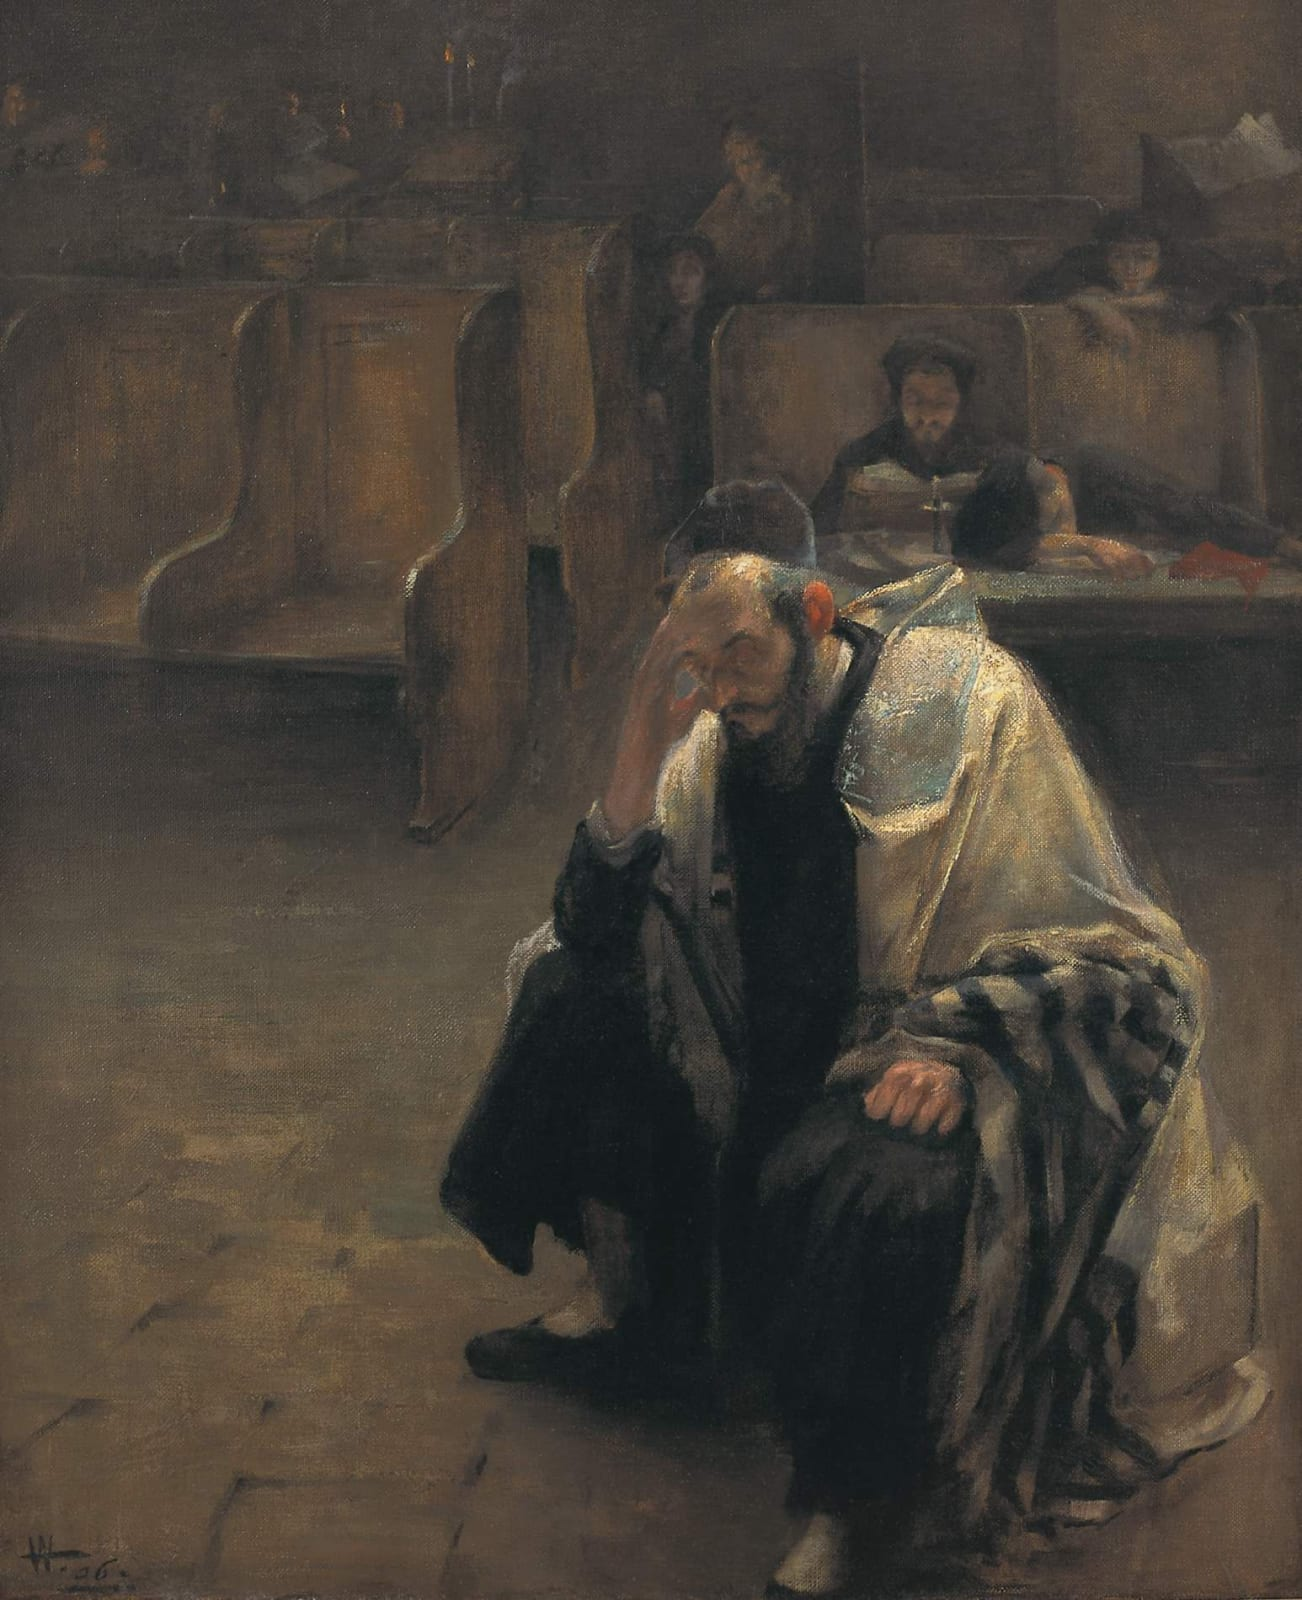 Alfred Wolmark (1877-1961) In the Synagogue 1906 Oil on canvas 106.5 x 88 cm Ben Uri Collection © Alfred Wolmark estate To see and discover more about this artist click here